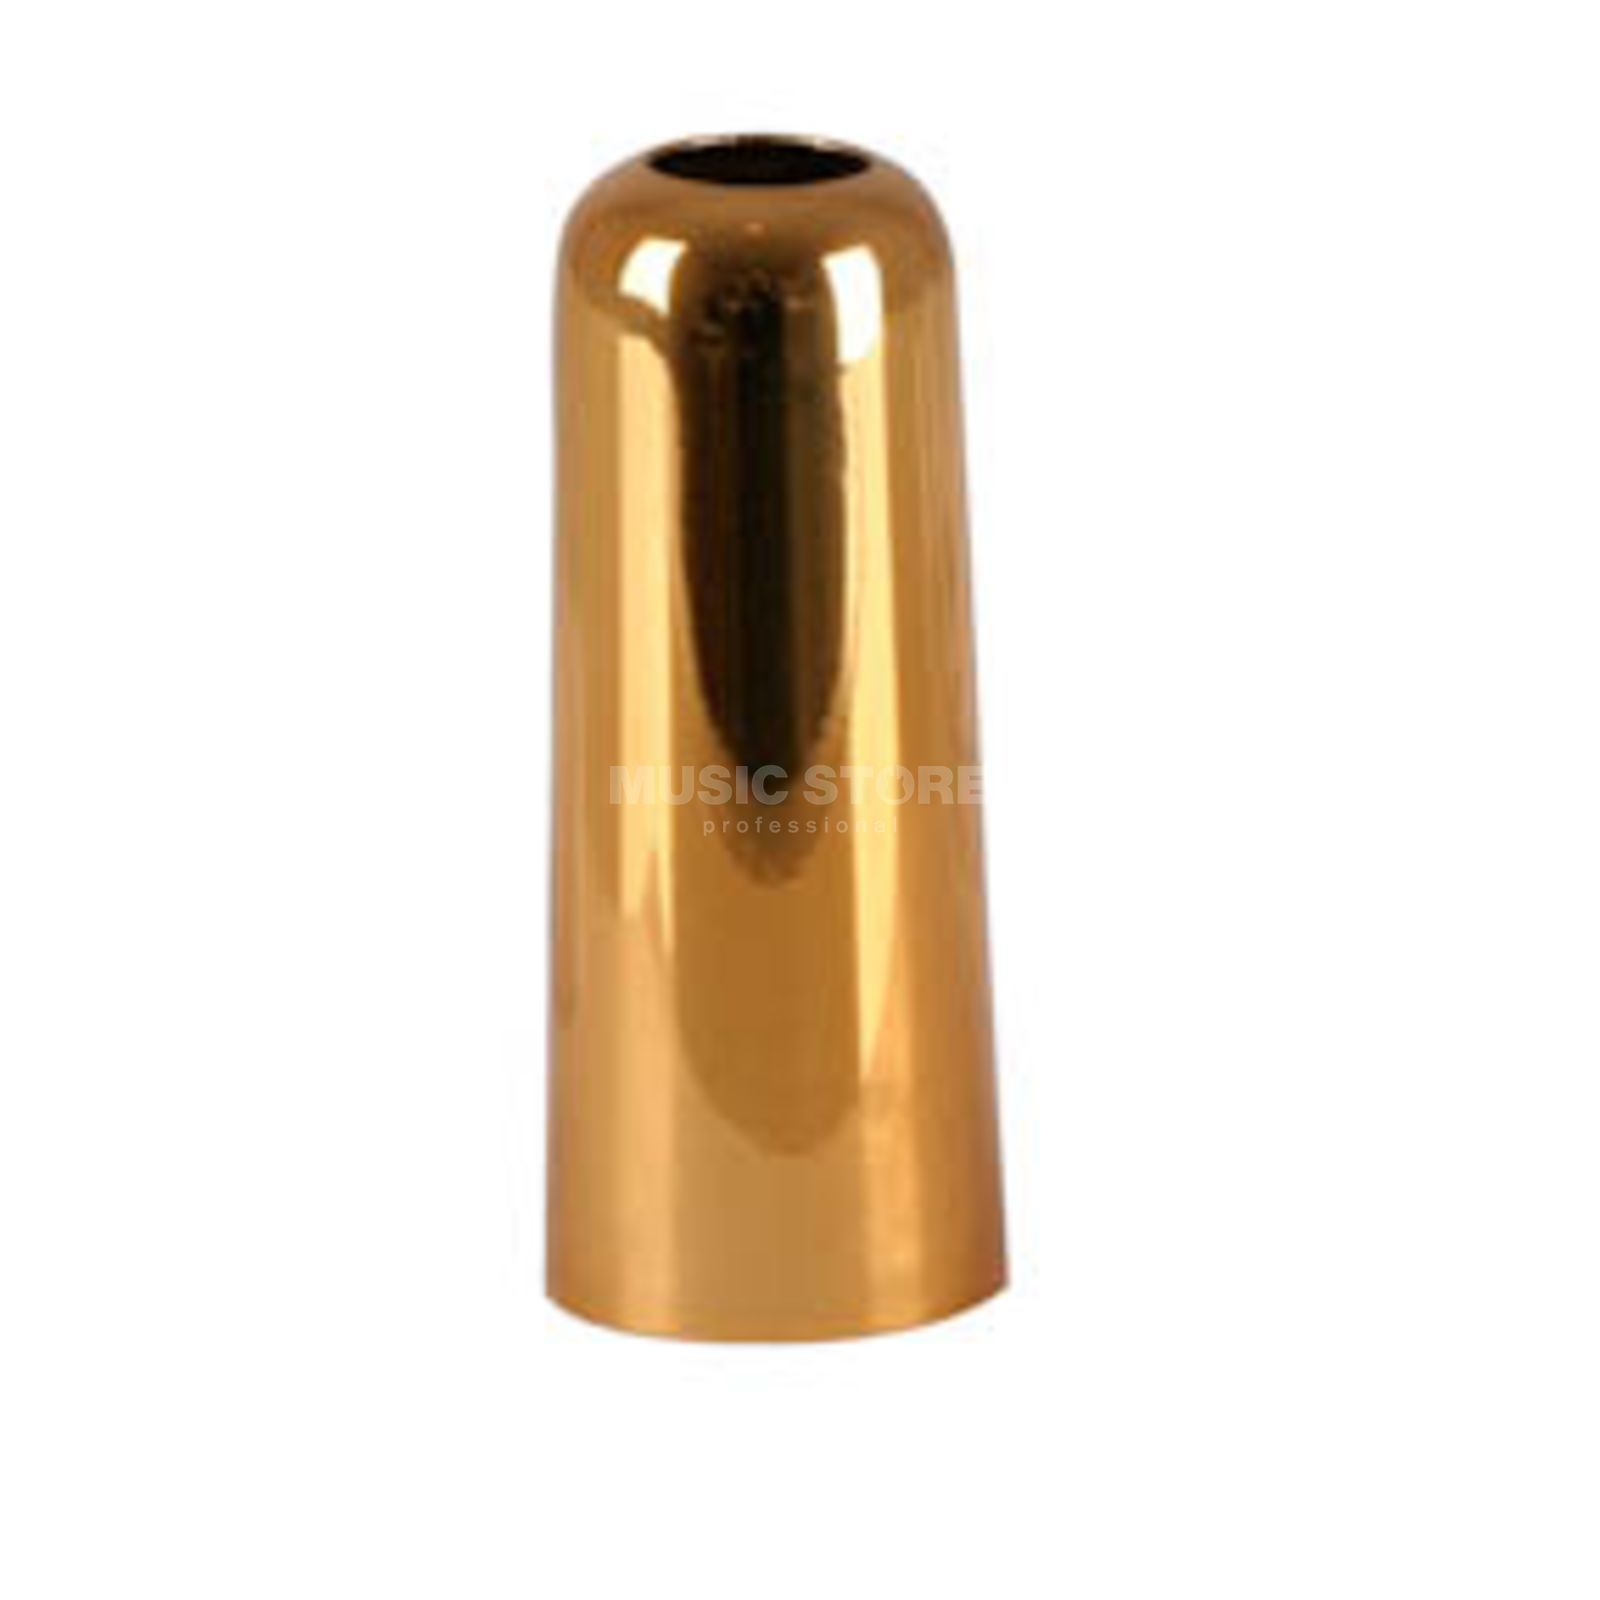 OTTO LINK Capsule for Alto / Tenor Saxophone Mouth-Piece Image du produit